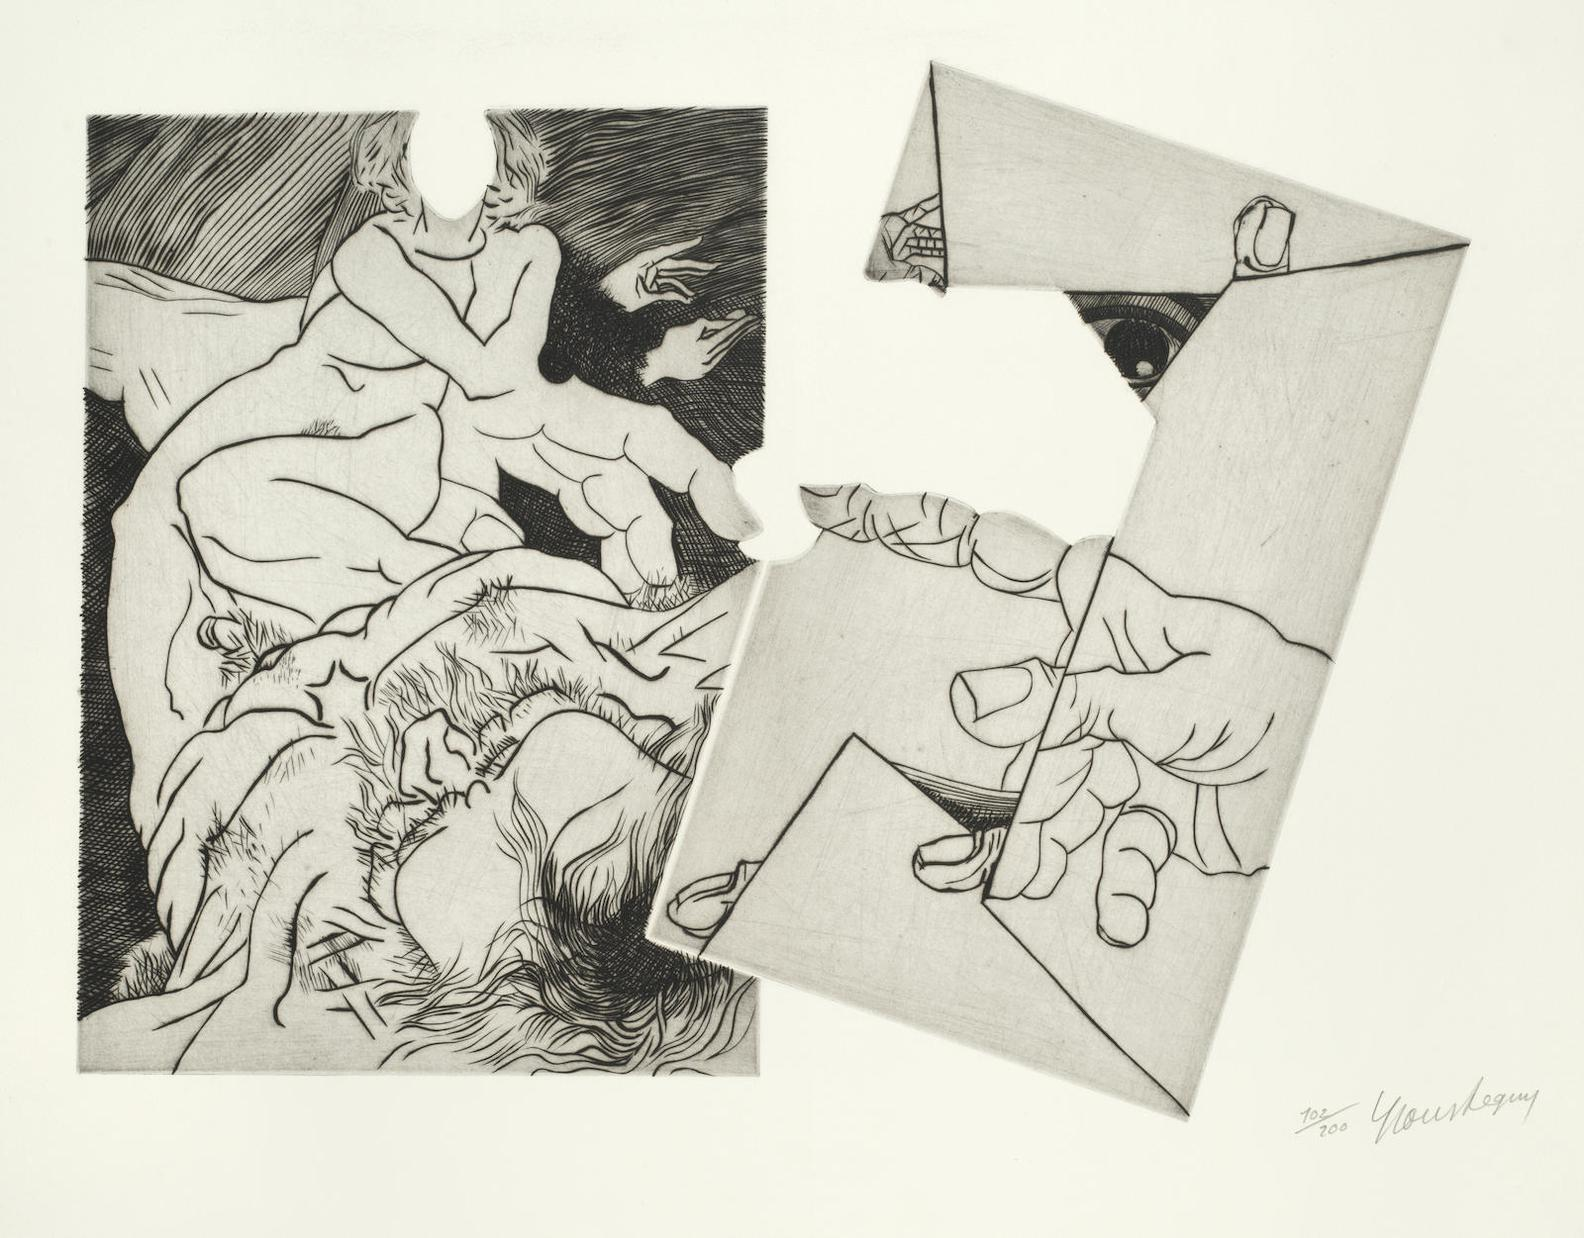 Various Artists - Three Plates, From Homage A Michelangelo-1975